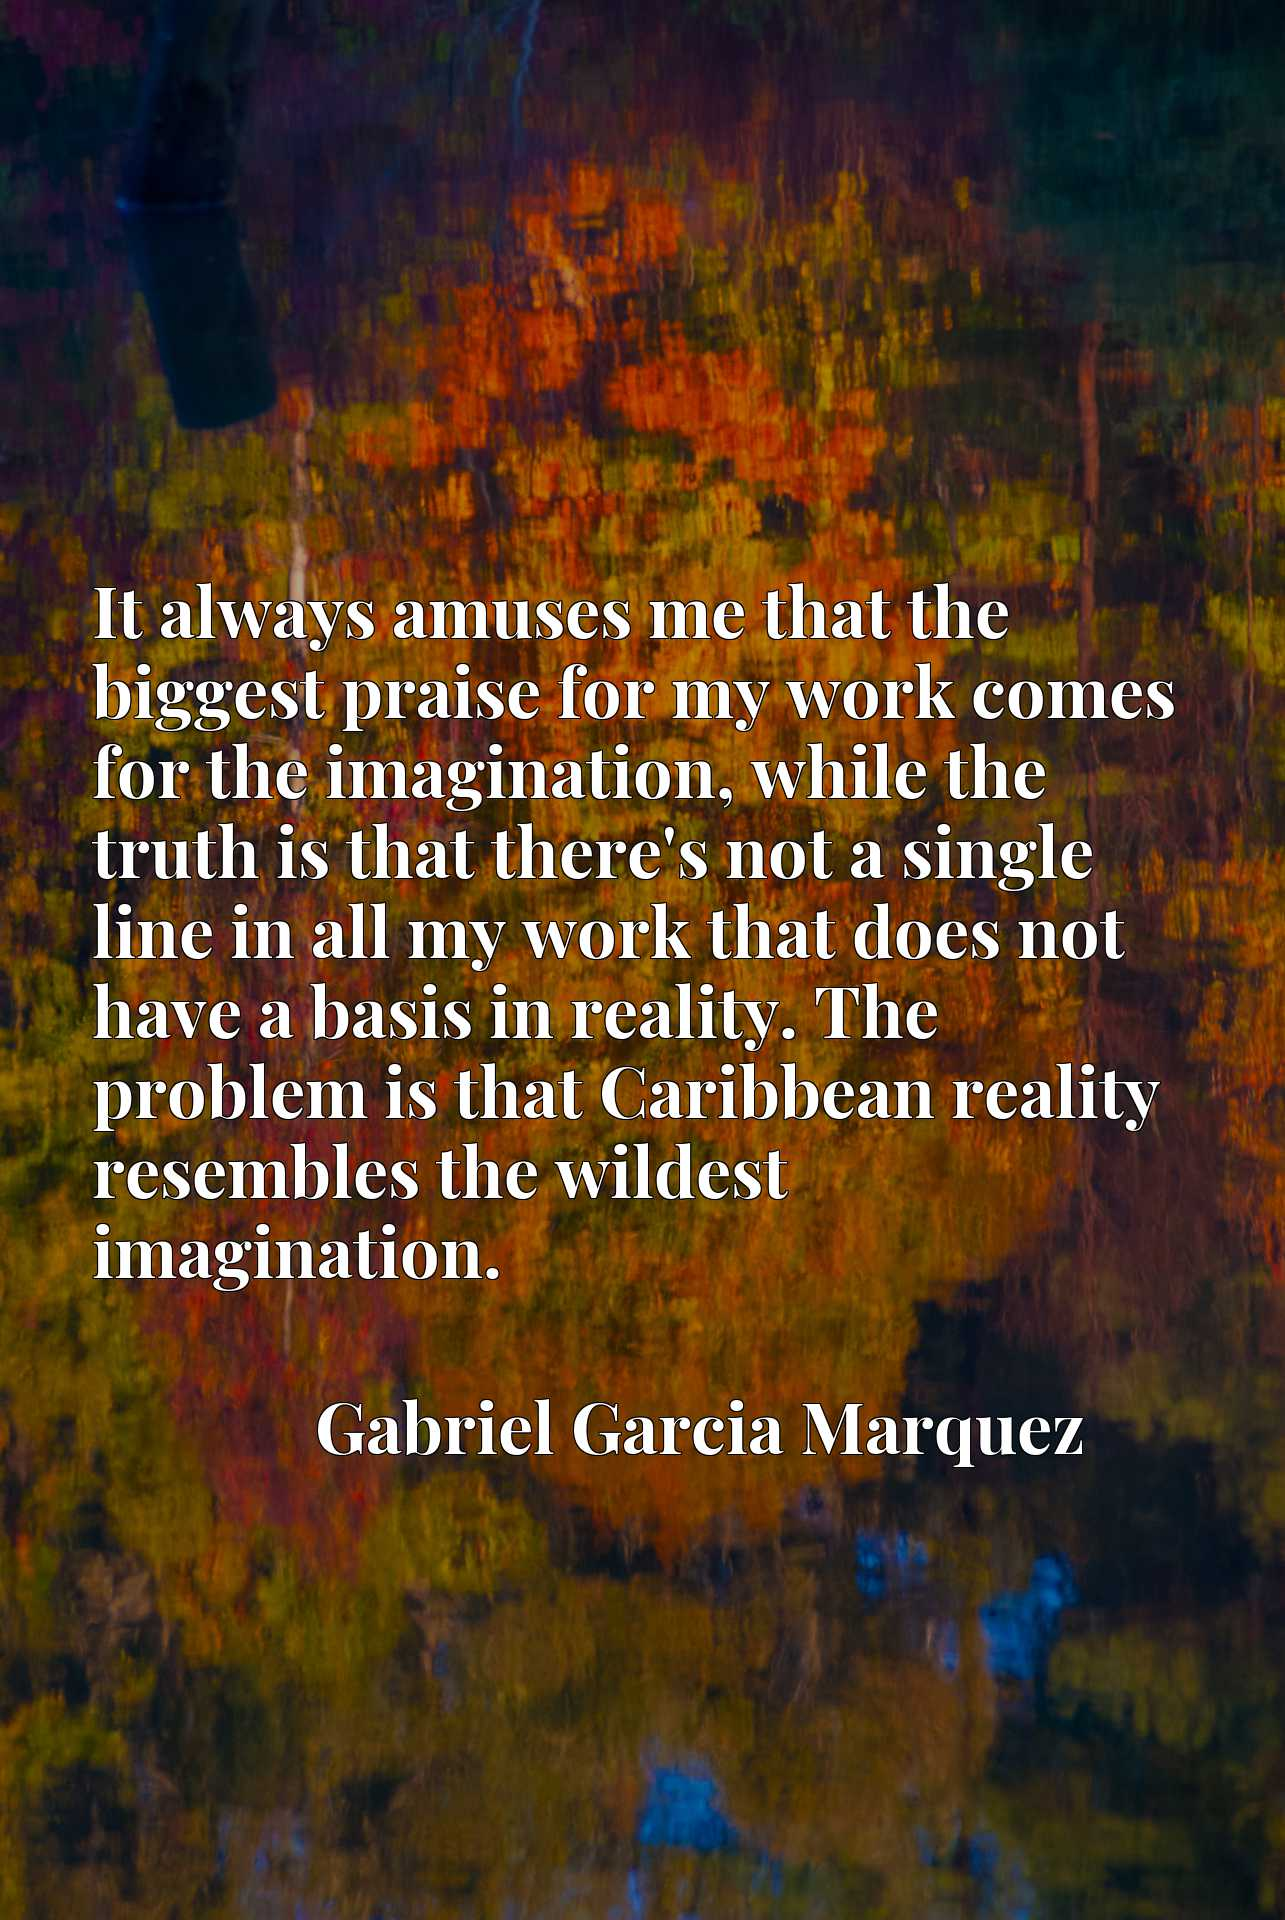 It always amuses me that the biggest praise for my work comes for the imagination, while the truth is that there's not a single line in all my work that does not have a basis in reality. The problem is that Caribbean reality resembles the wildest imagination.